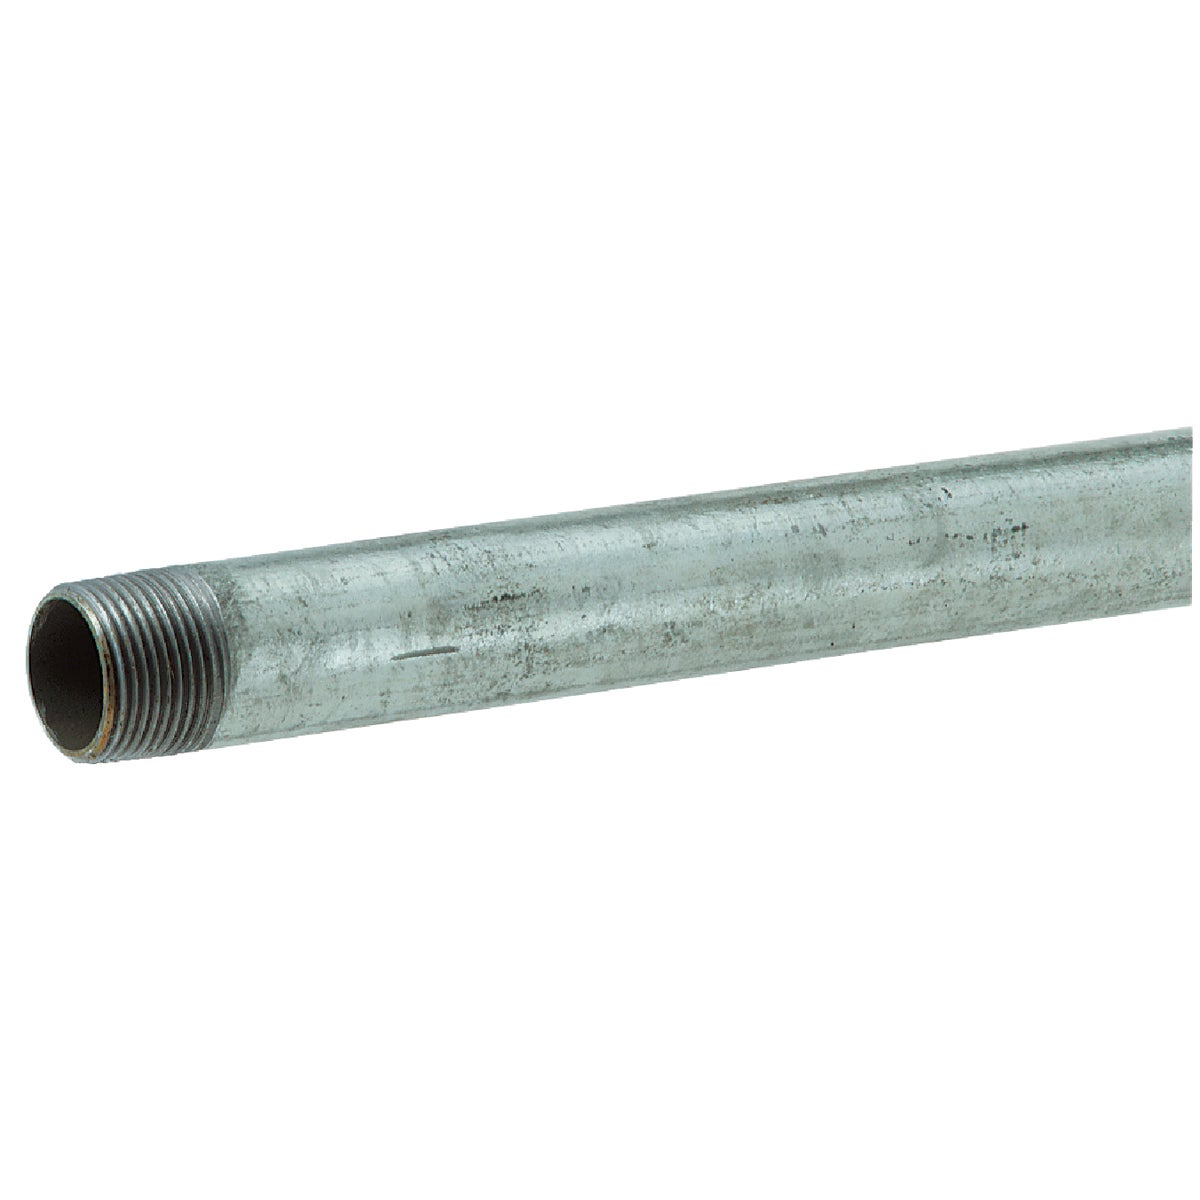 1/2X18 GALV RDI-CT PIPE